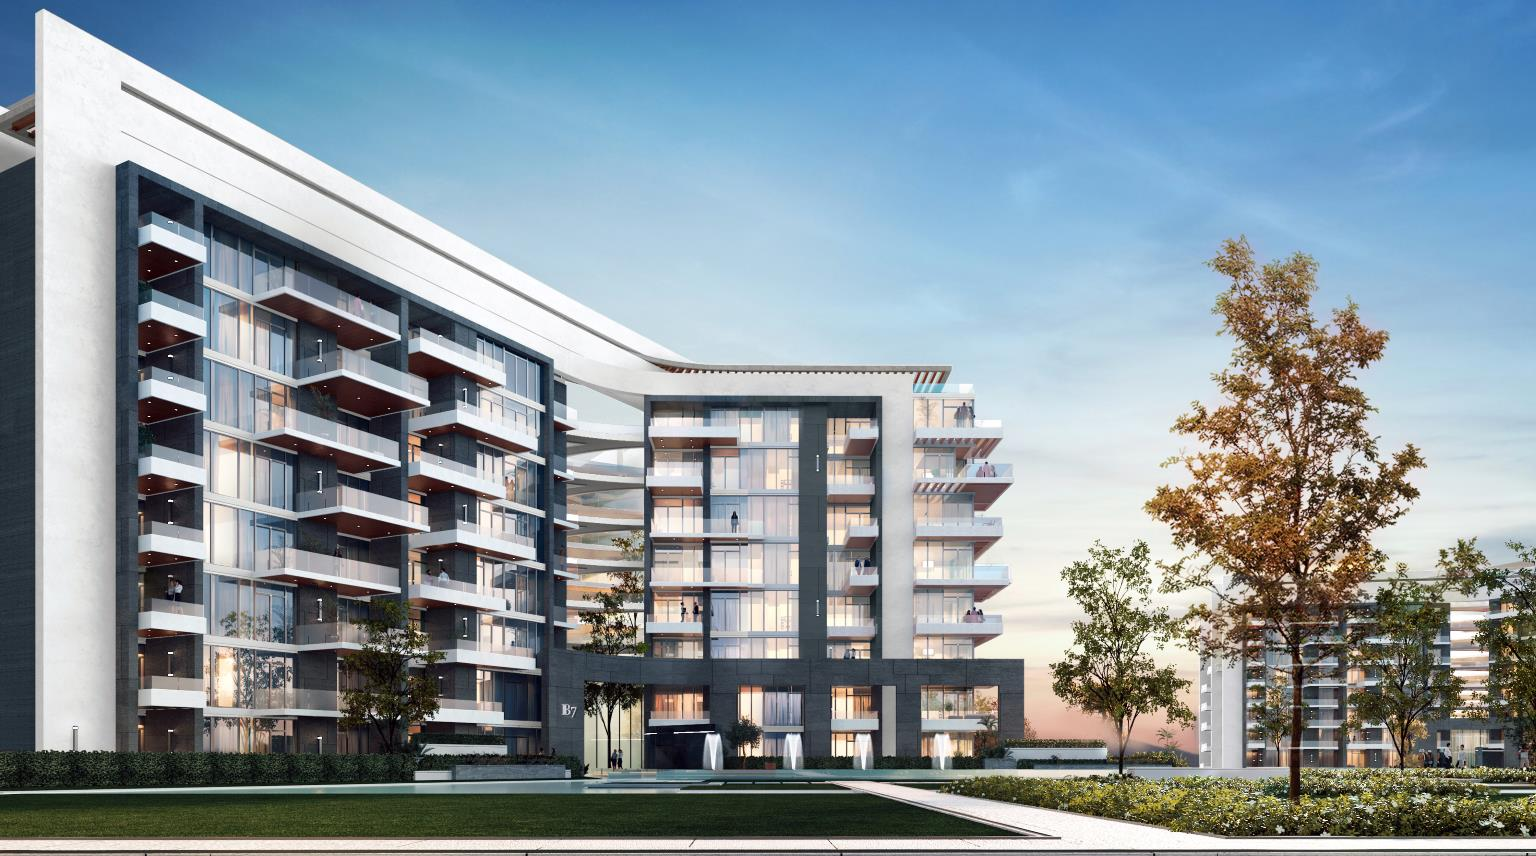 2380-the-capital-way-the-waterway-new-capital-apartment-garden